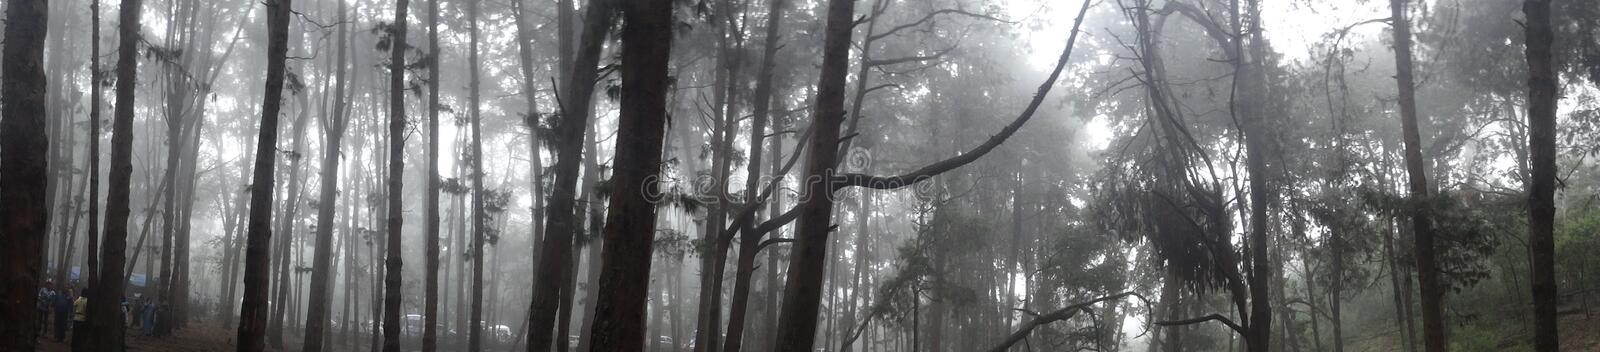 Forest of Pine trees with mist stock images